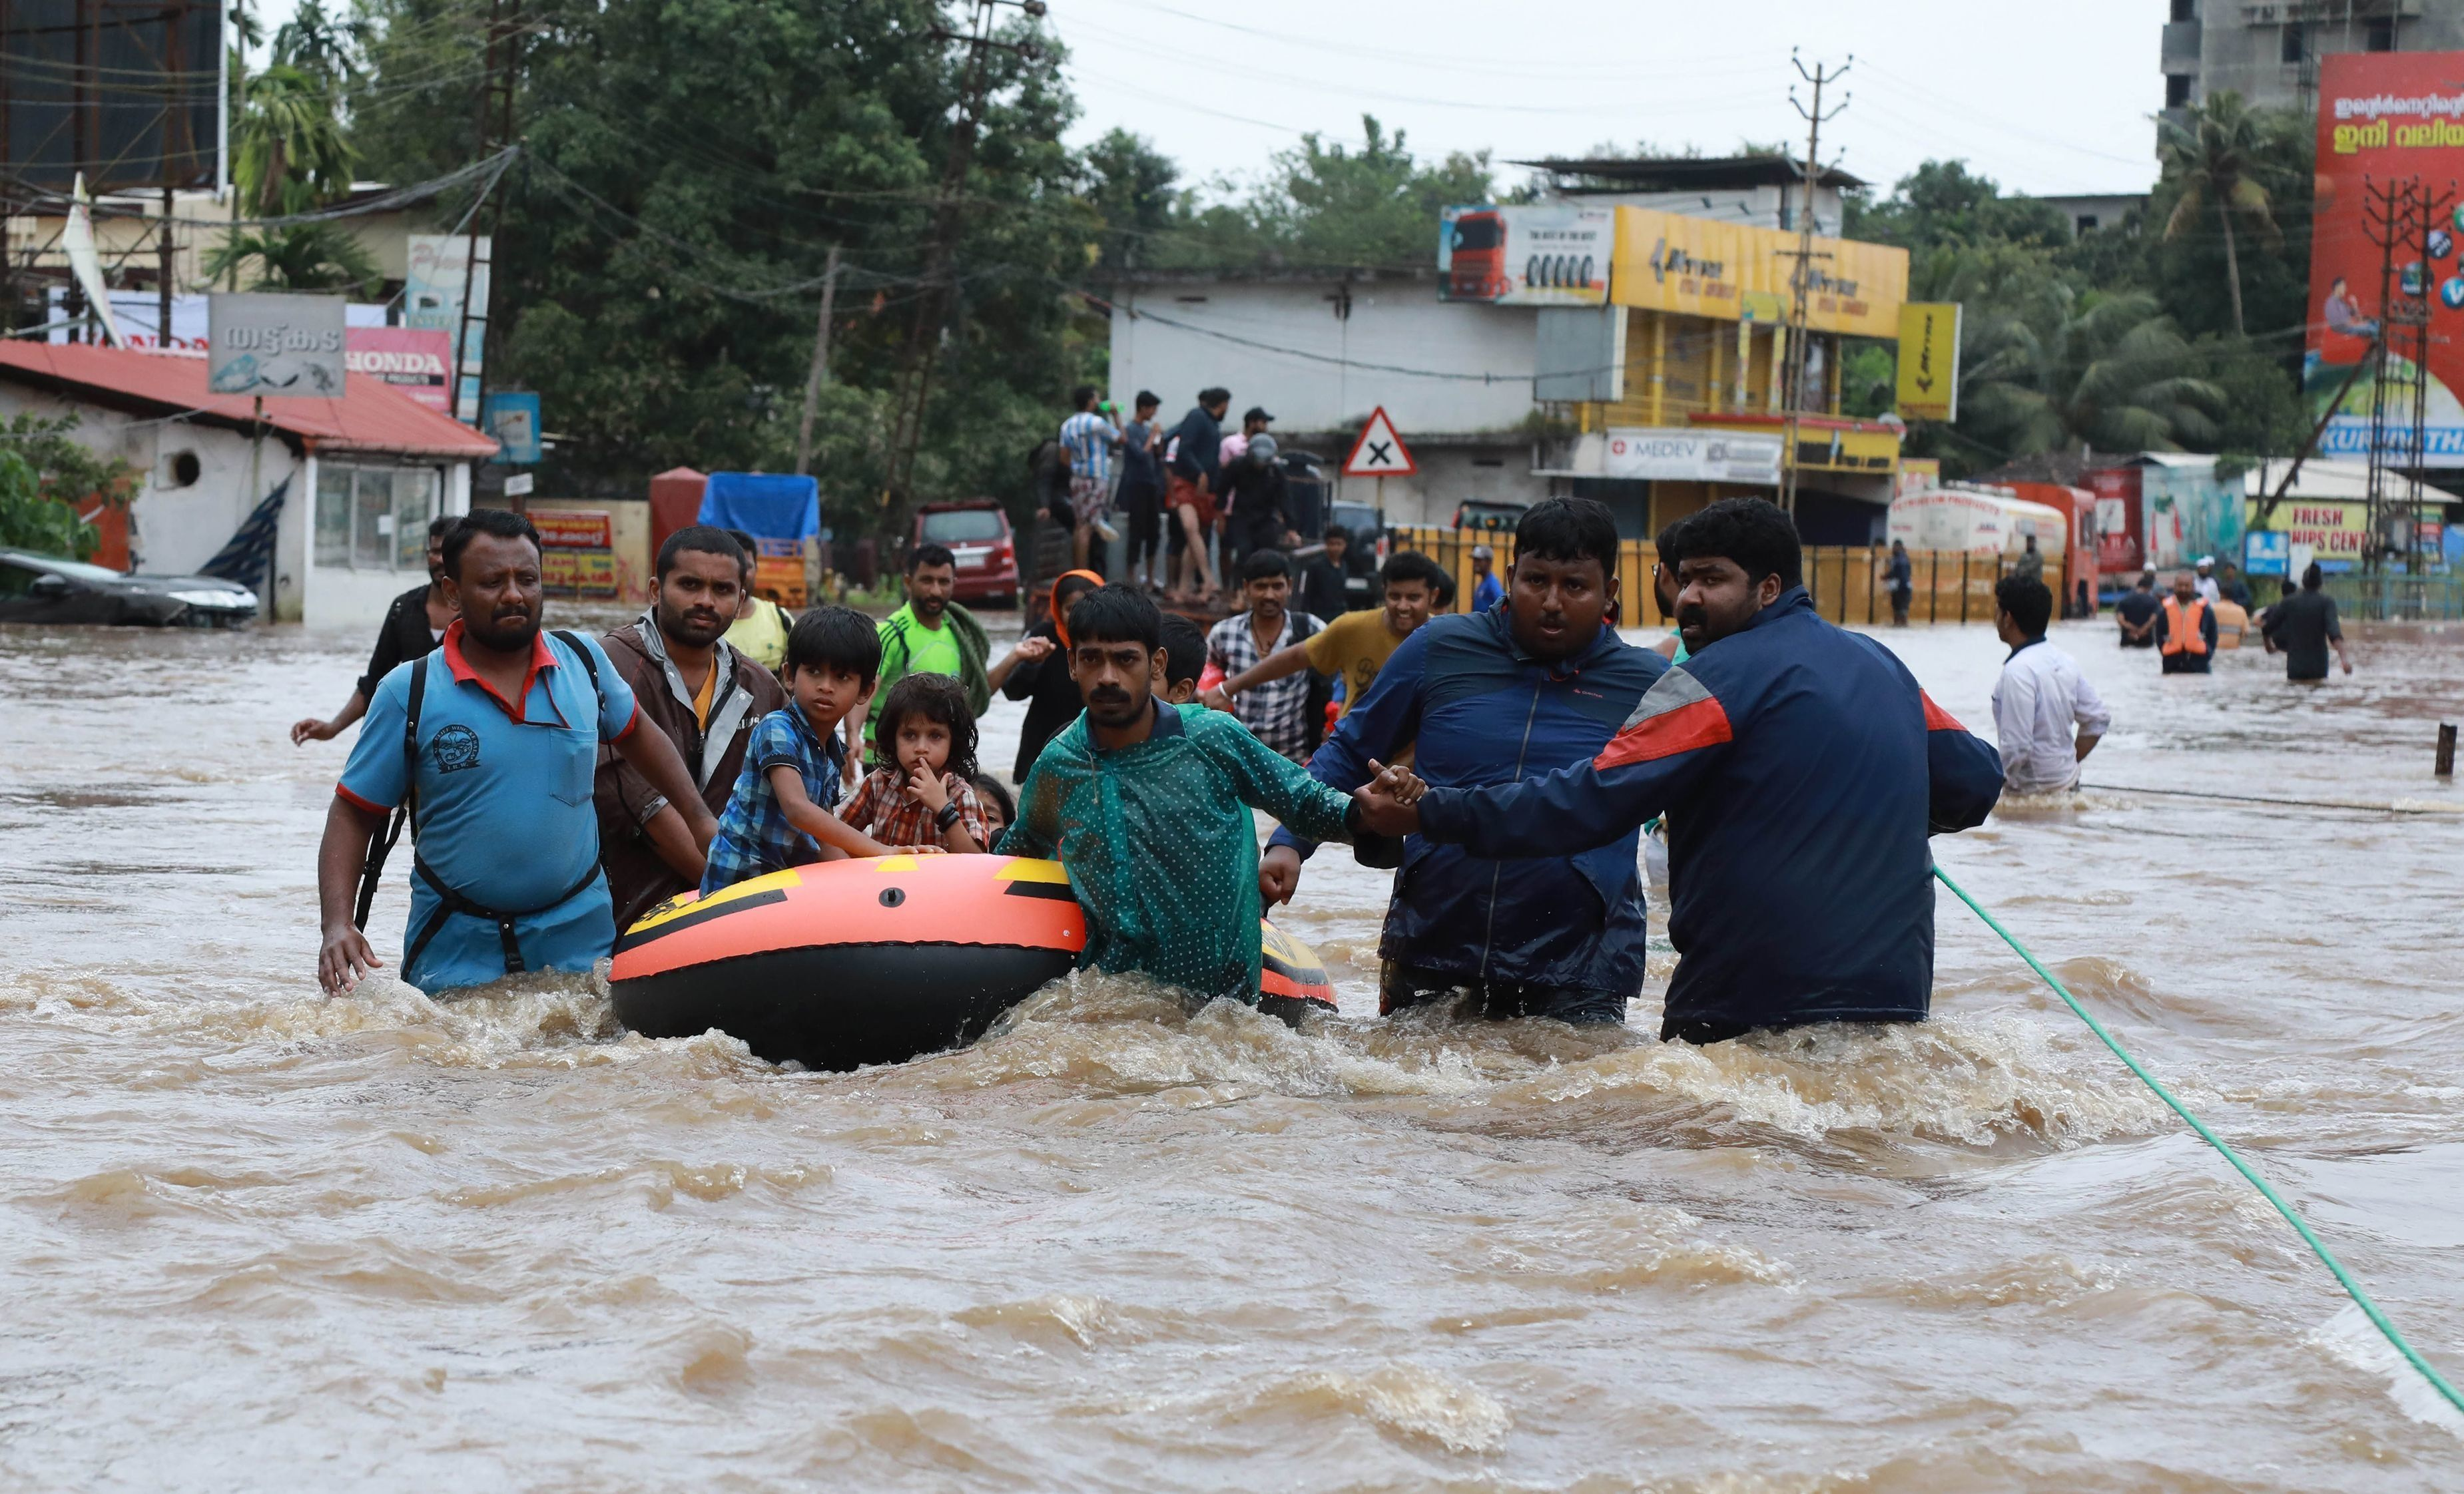 Indian volunteers and rescue personnel evacuate local residents in a boat in a residential area at Aluva in Ernakulam distric